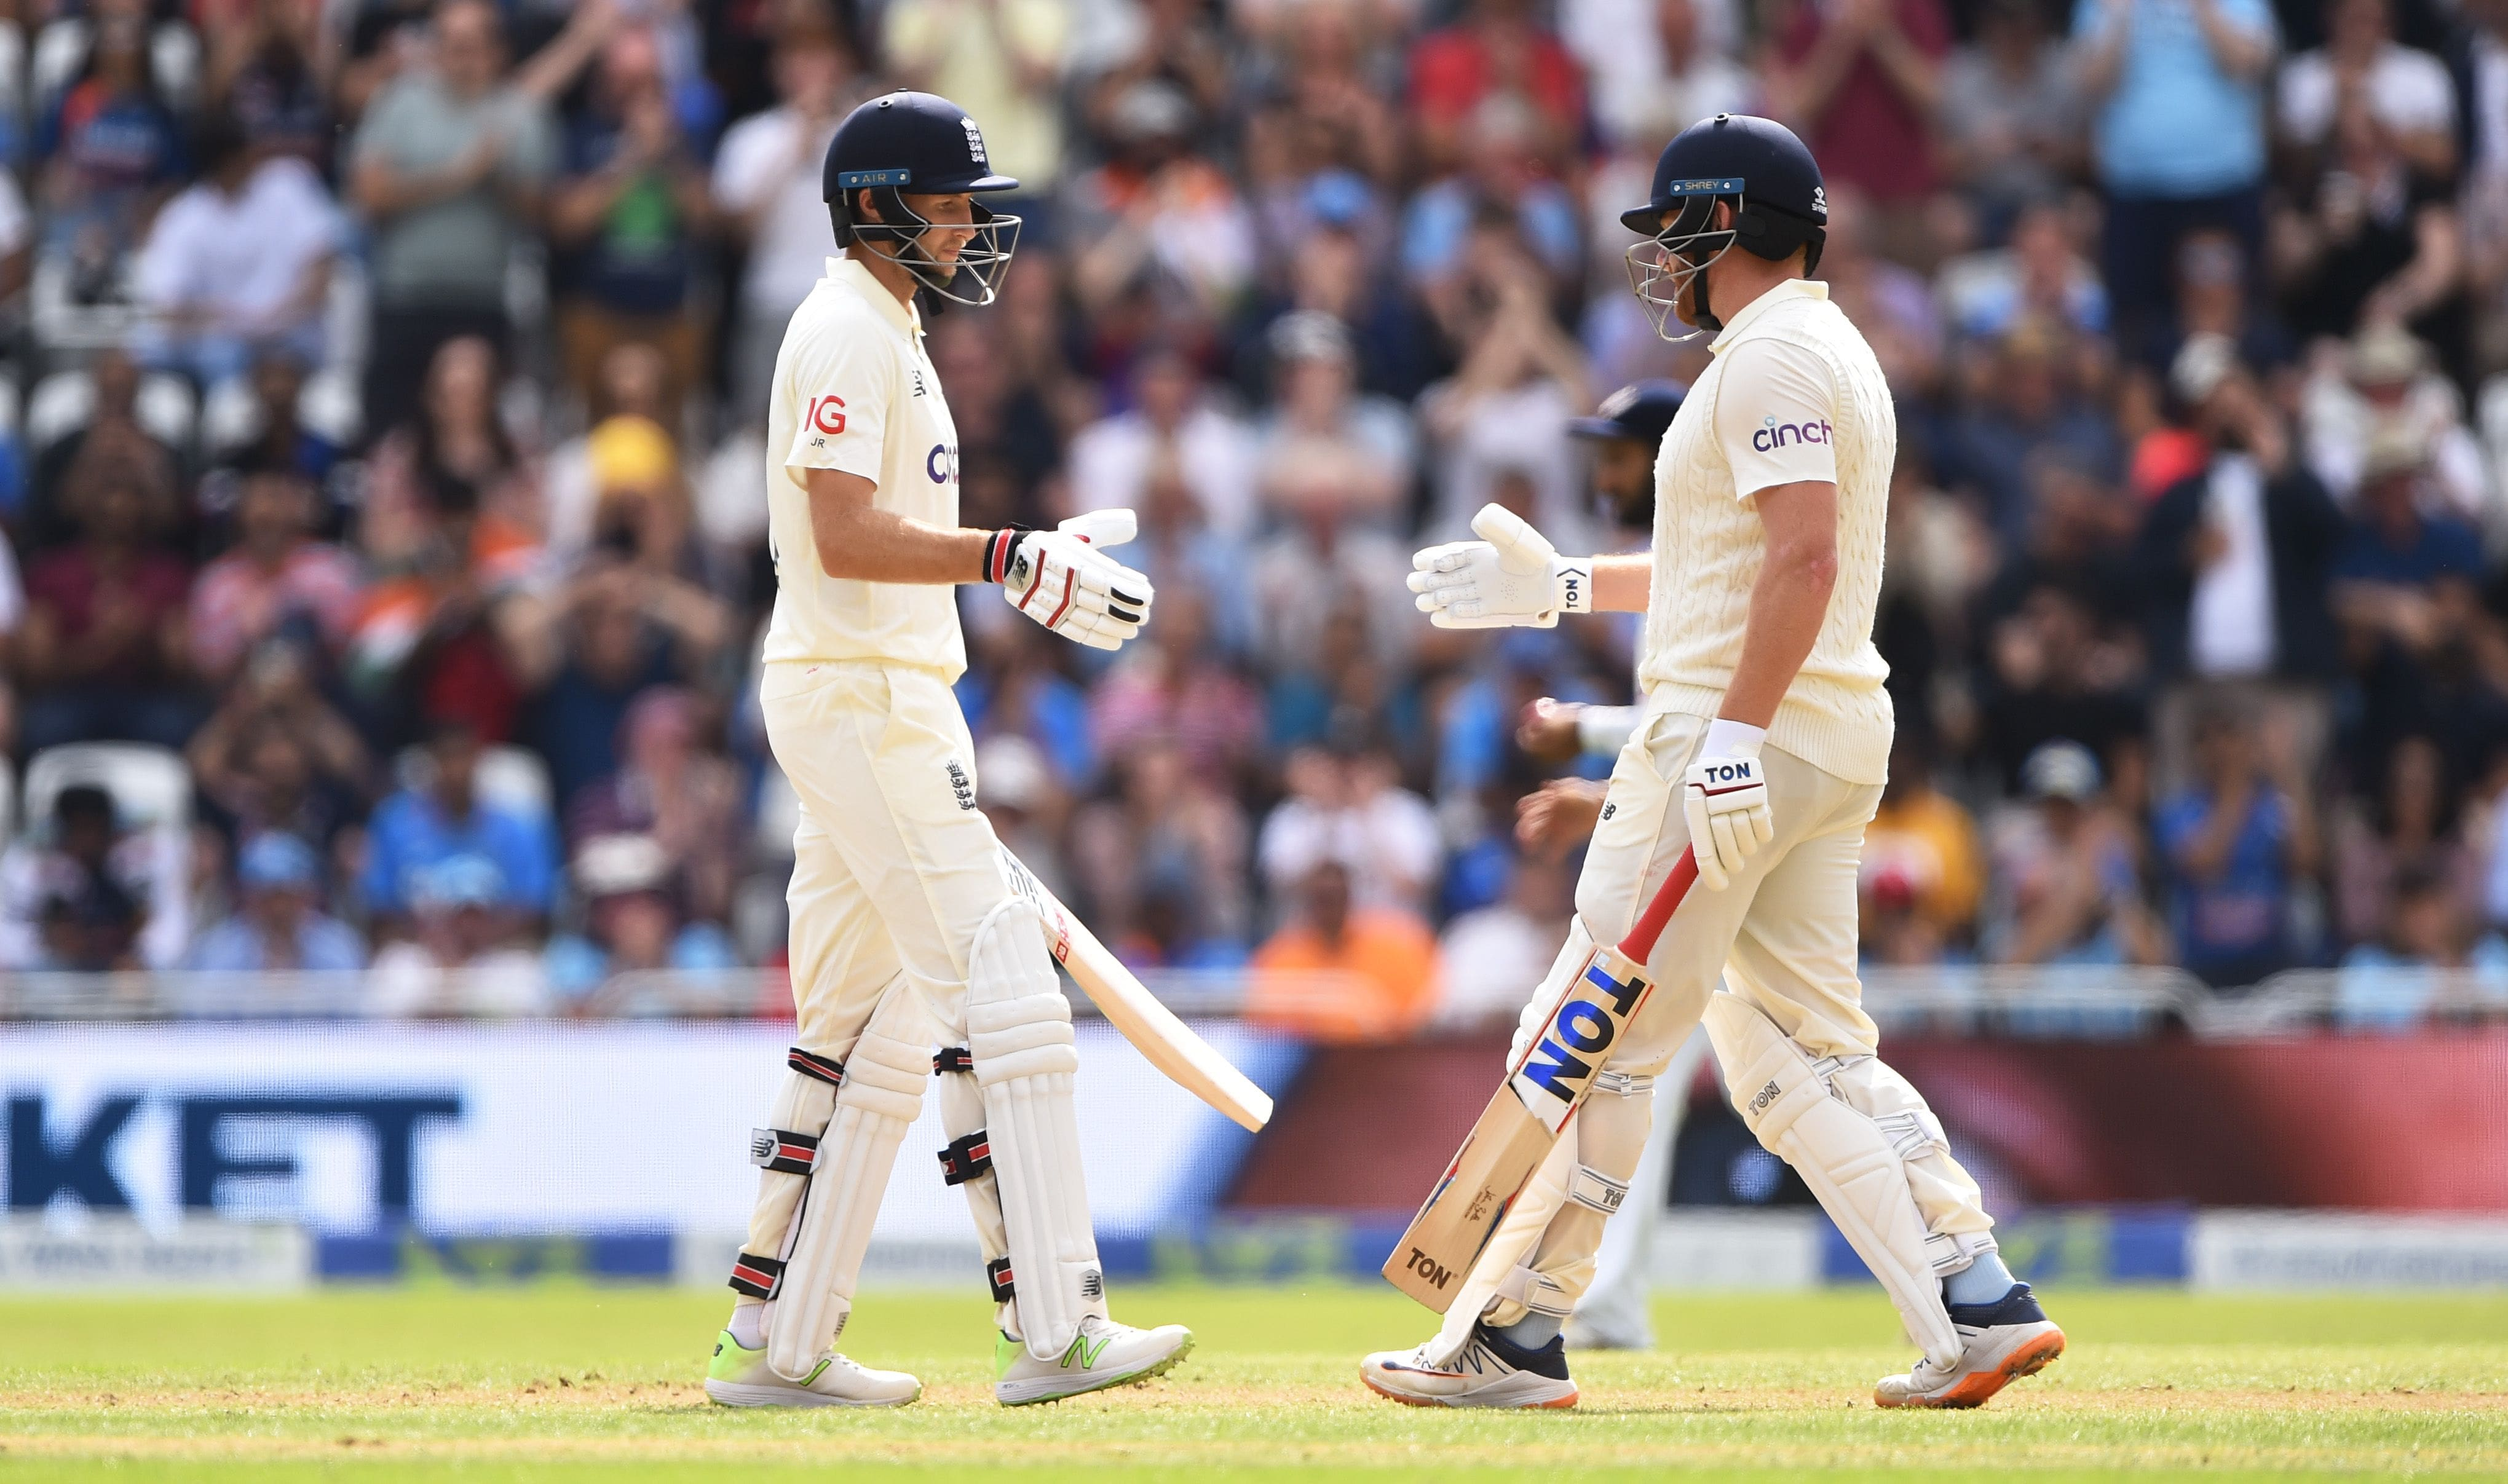 If you score runs, you will stay in the team: Jonny Bairstow